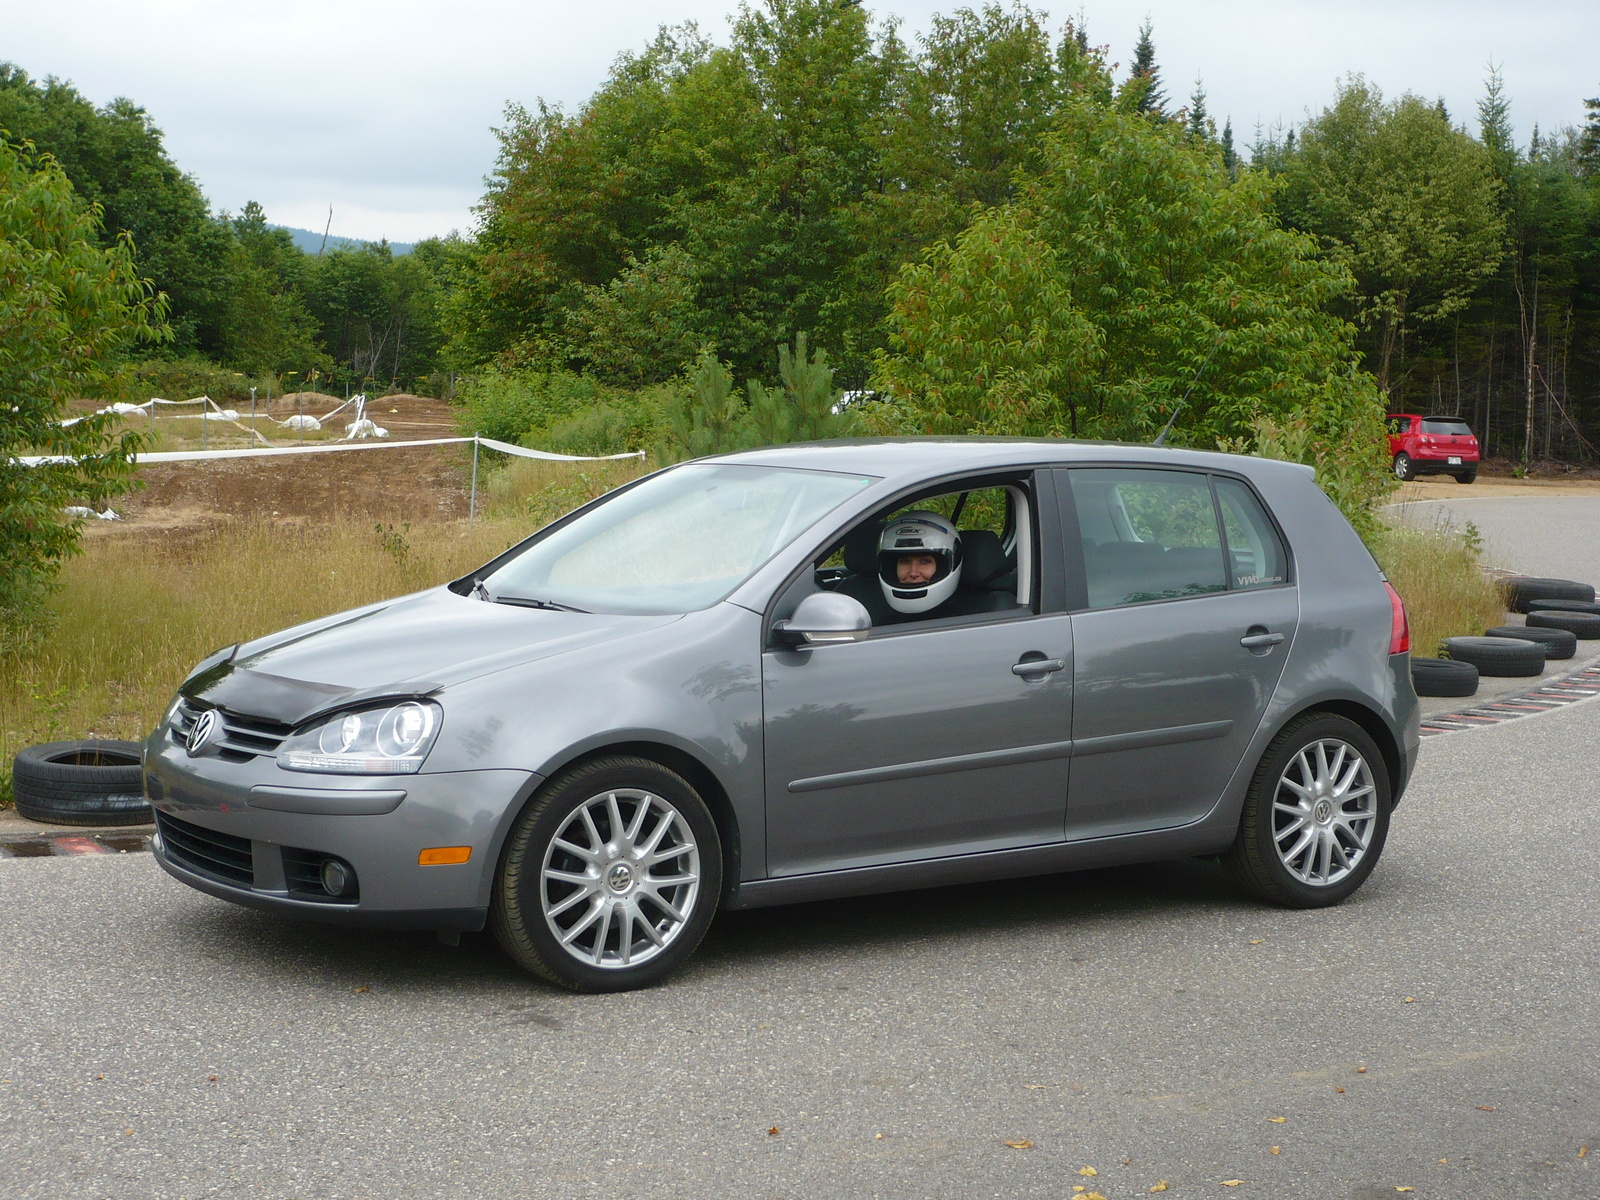 Volkswagen Rabbit 2009 #1